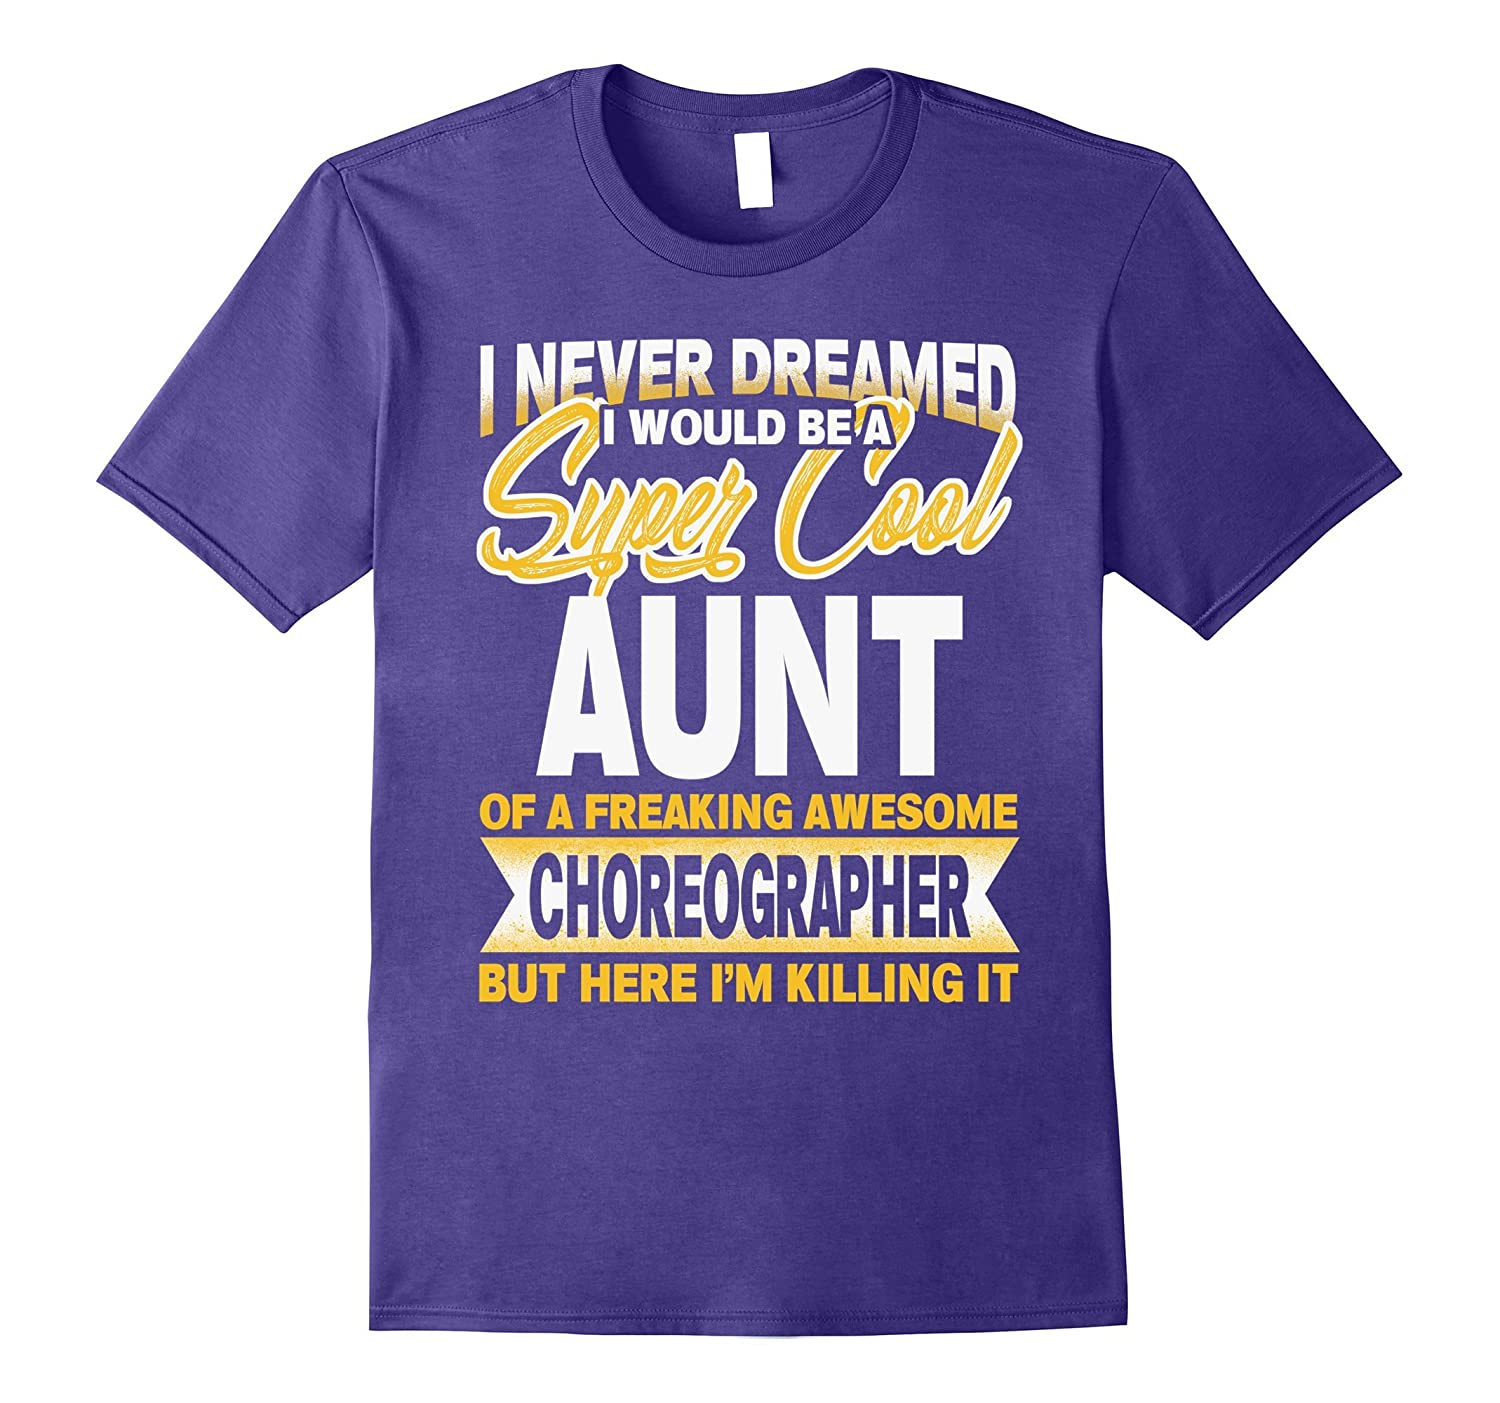 im a super cool aunt of an awesome Choreographer-TJ